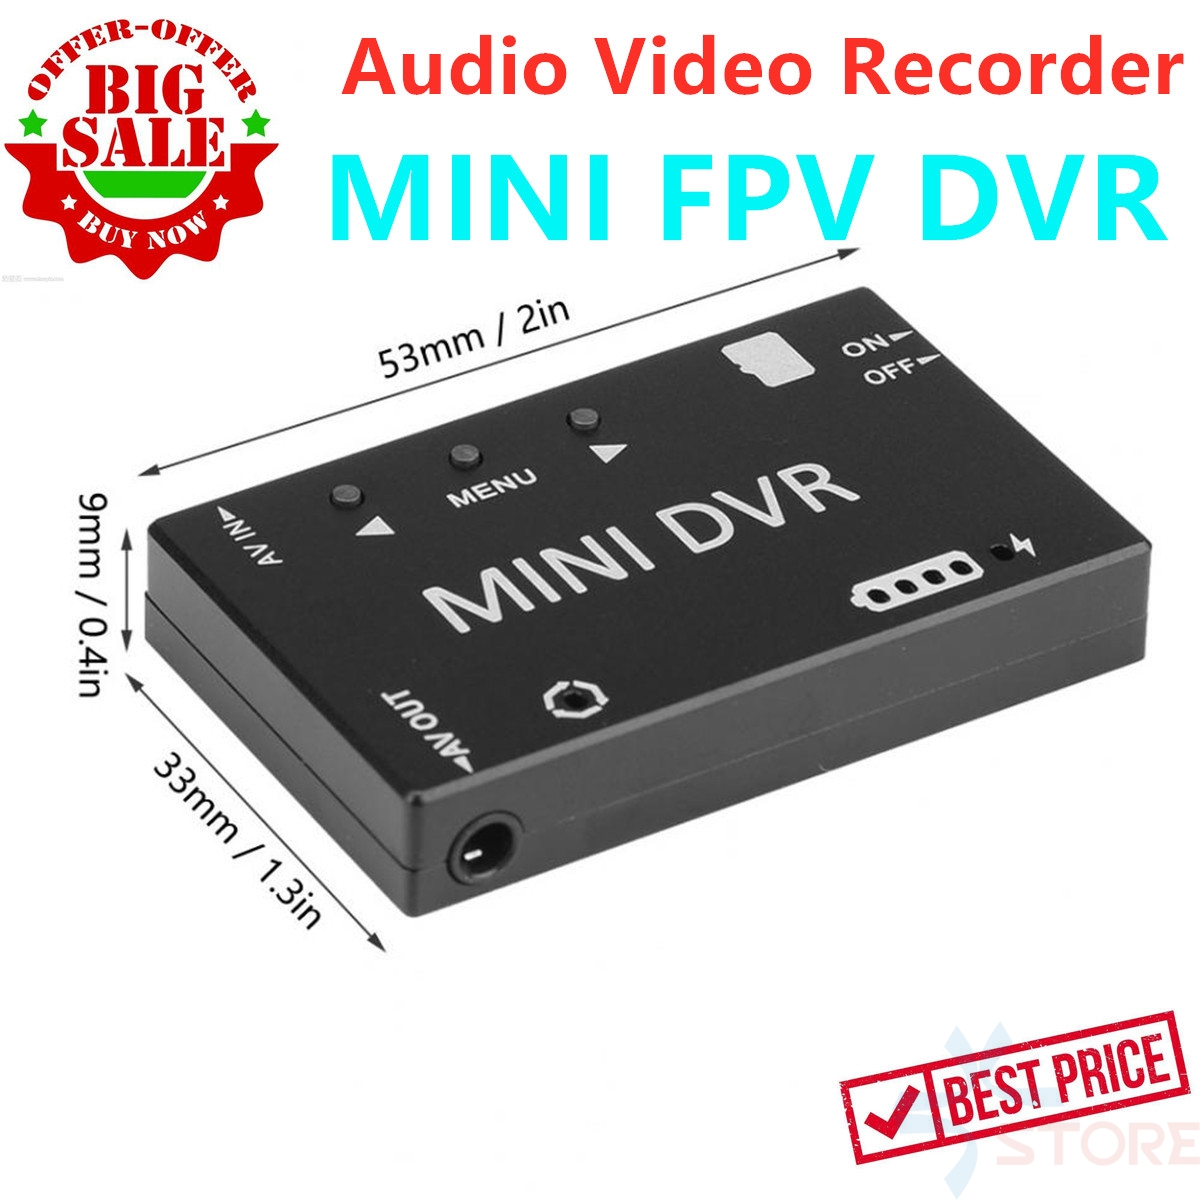 Mini FPV DVR Module NTSC/PAL Switchable Built-in Battery Video Audio FPV Recorder For RC Models Racing FPV Drone